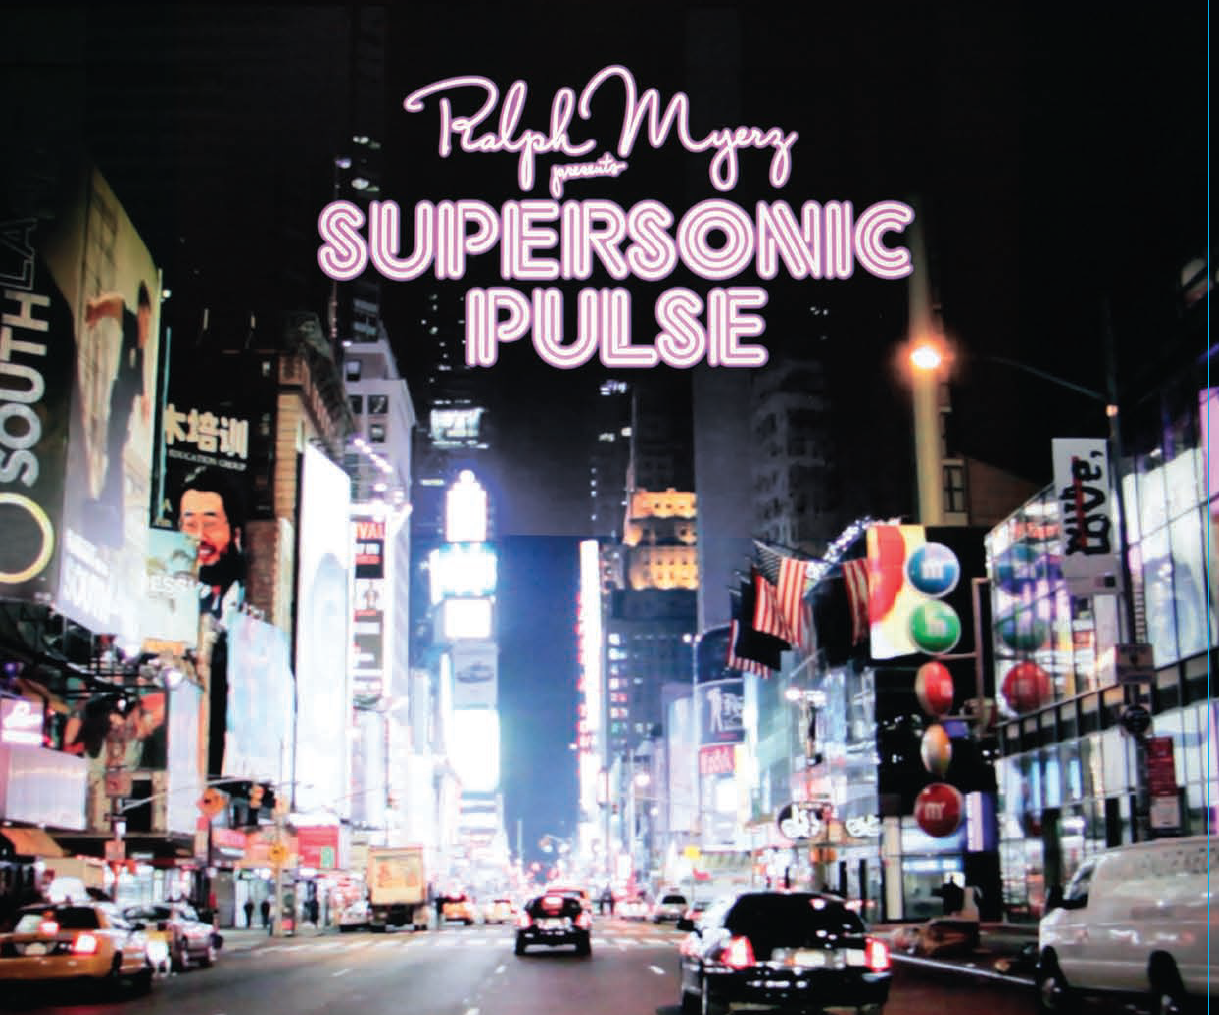 Ralph Myerz/SUPERSONIC PULSE CD